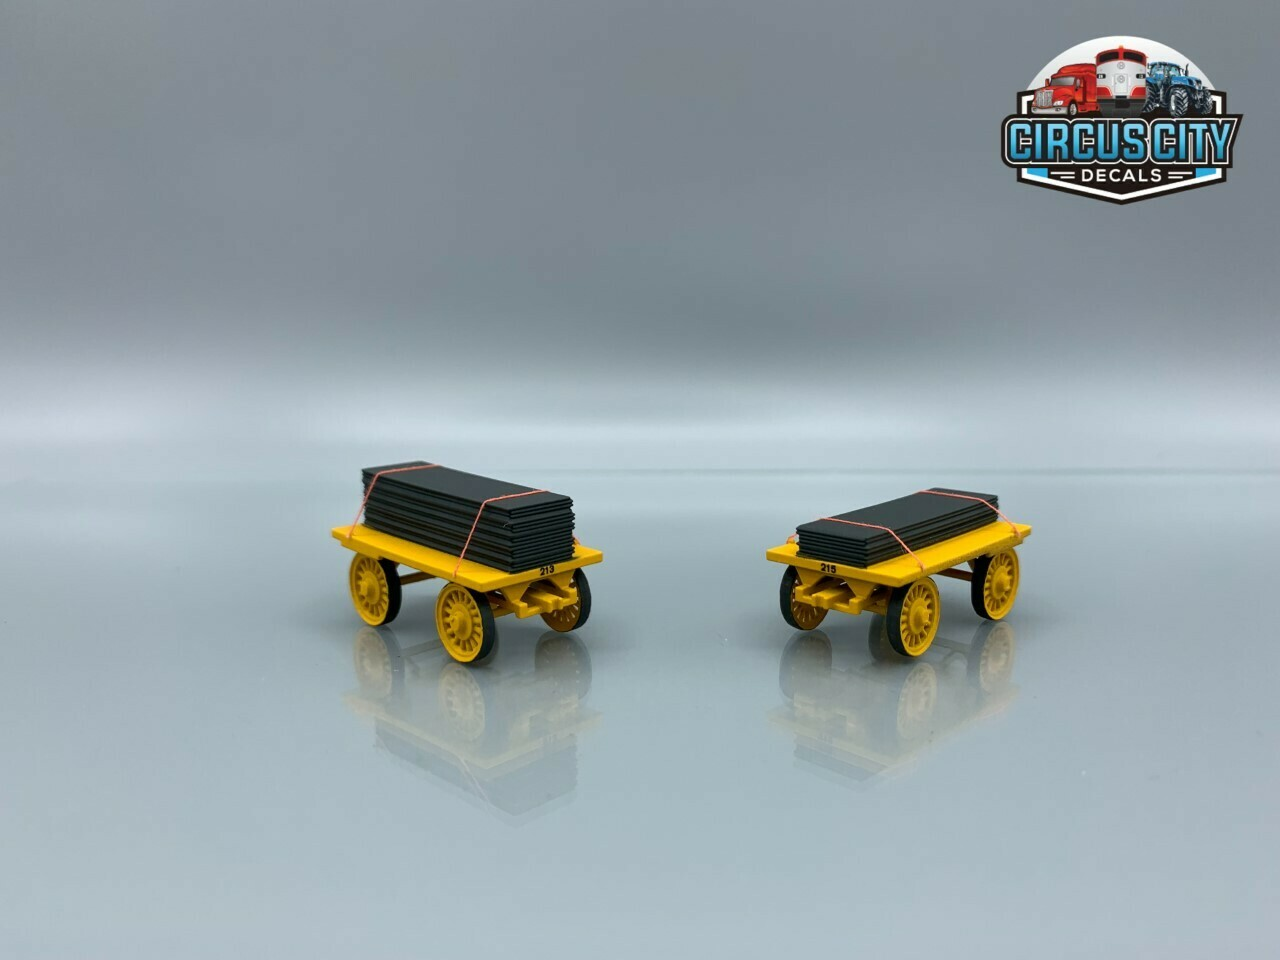 Mat Wagon Kit HO Scale Circus (Qty 2)